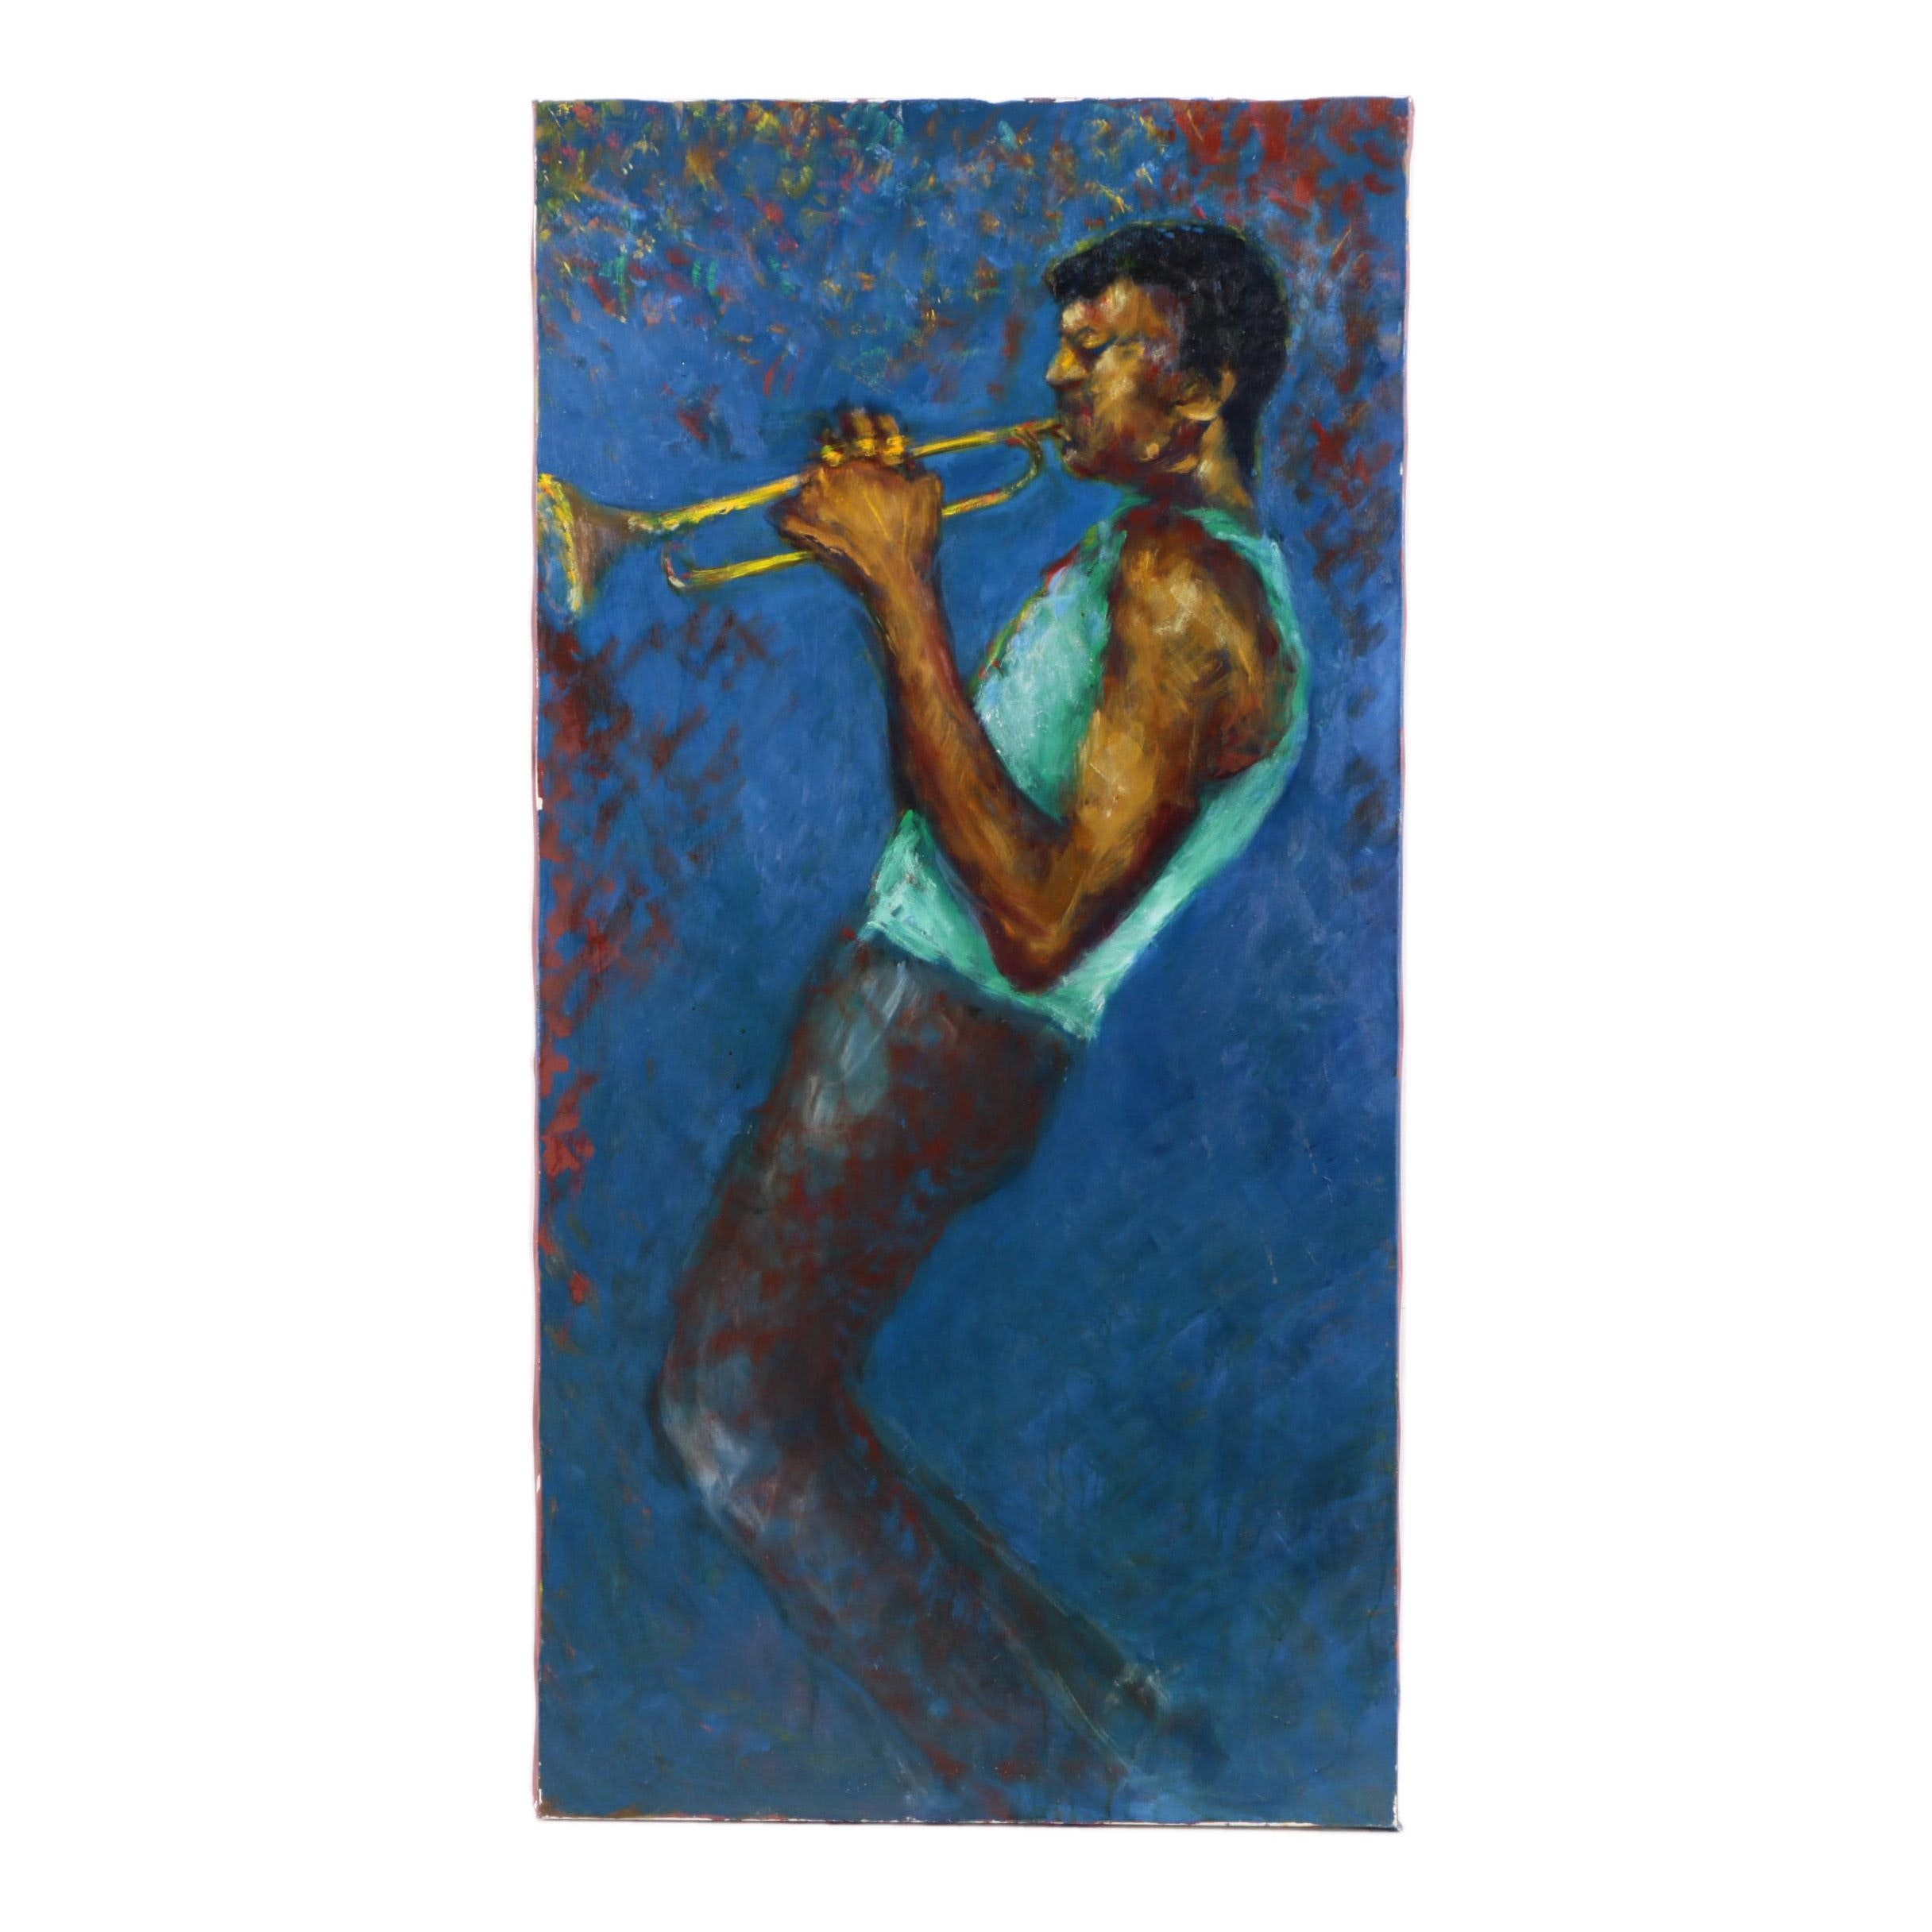 Oil Painting of a Trumpet Player Attributed to Eloe Woolf-Laiken